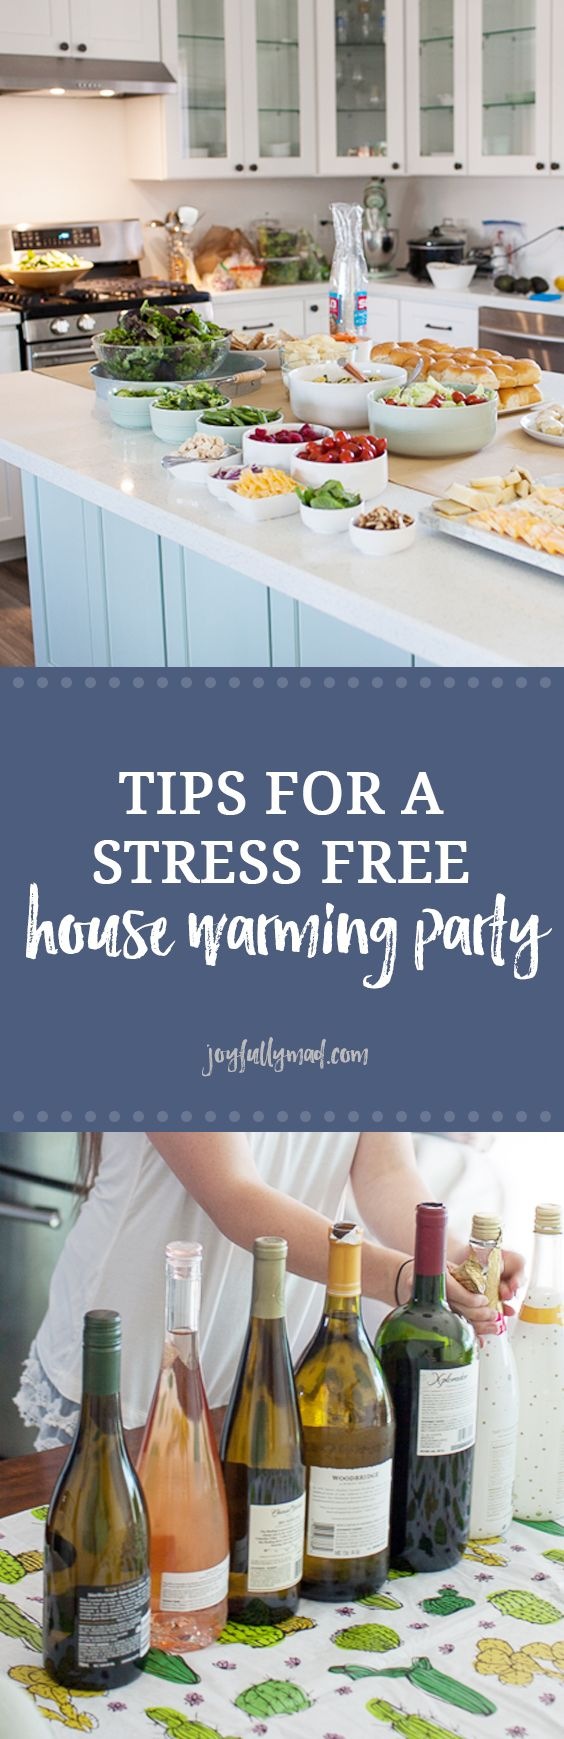 Hosting a house warming party soon? Here's how to meal plan, clean, and prep food for your own stress free house warming party!